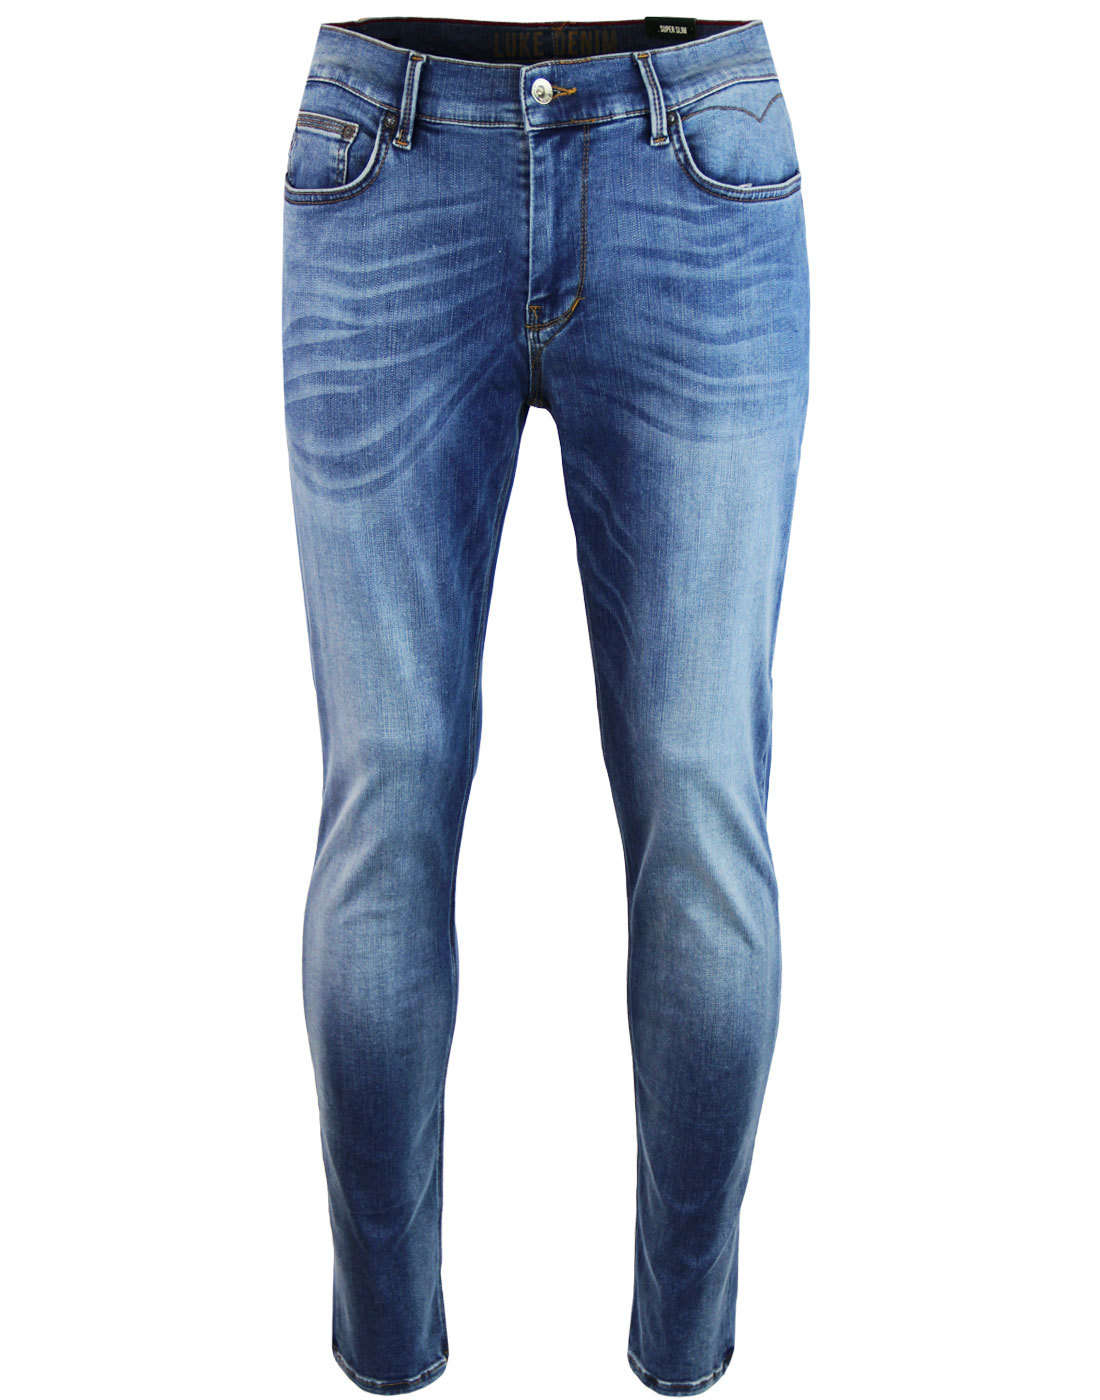 Rui LUKE 1977 Retro Skinny Fit Jeans LIGHT BLUE